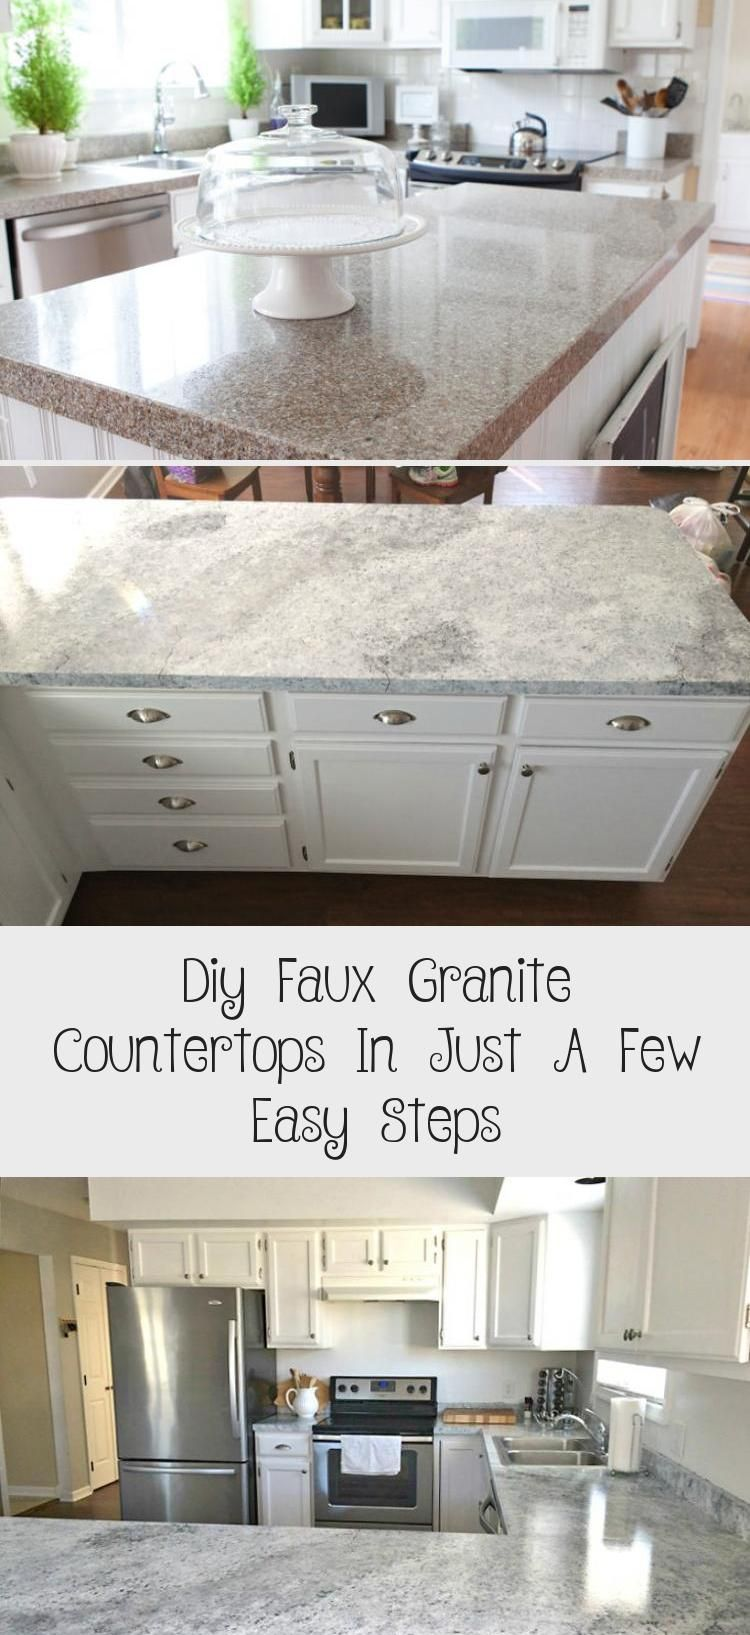 Learn How To Make Faux Granite Countertops To Makeover Your Kitchen On A Budget Step By Step Tutoria Faux Granite Countertops Granite Countertops Faux Granite